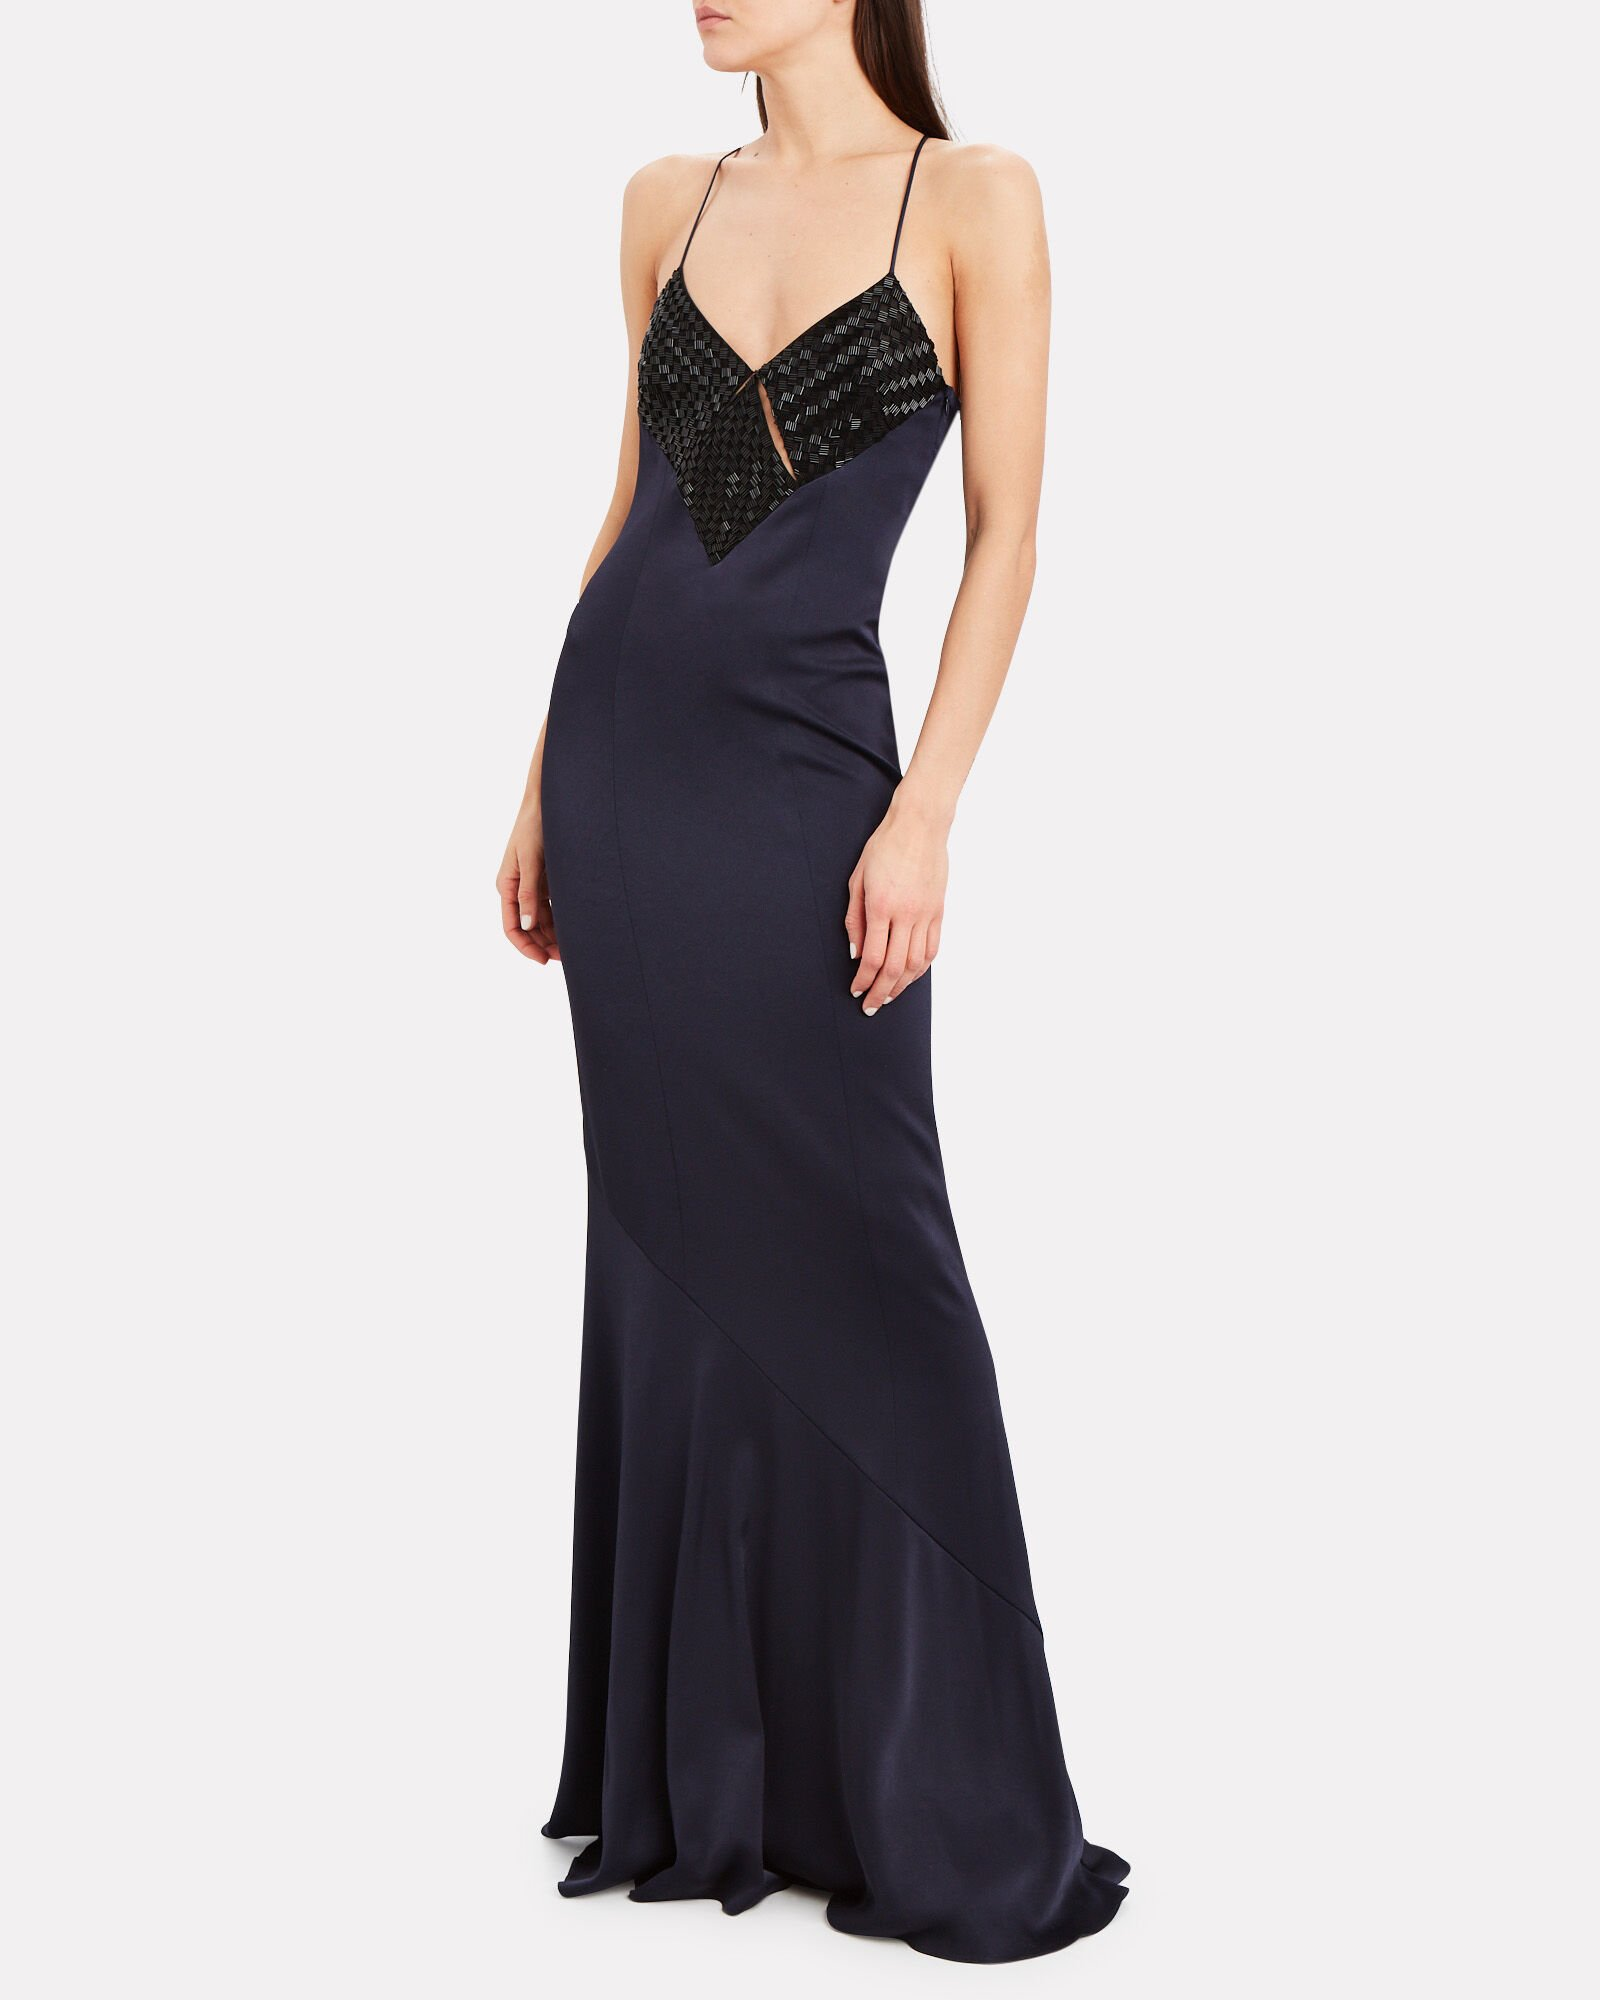 Beaded Diamond Cut-Out Gown, NAVY, hi-res